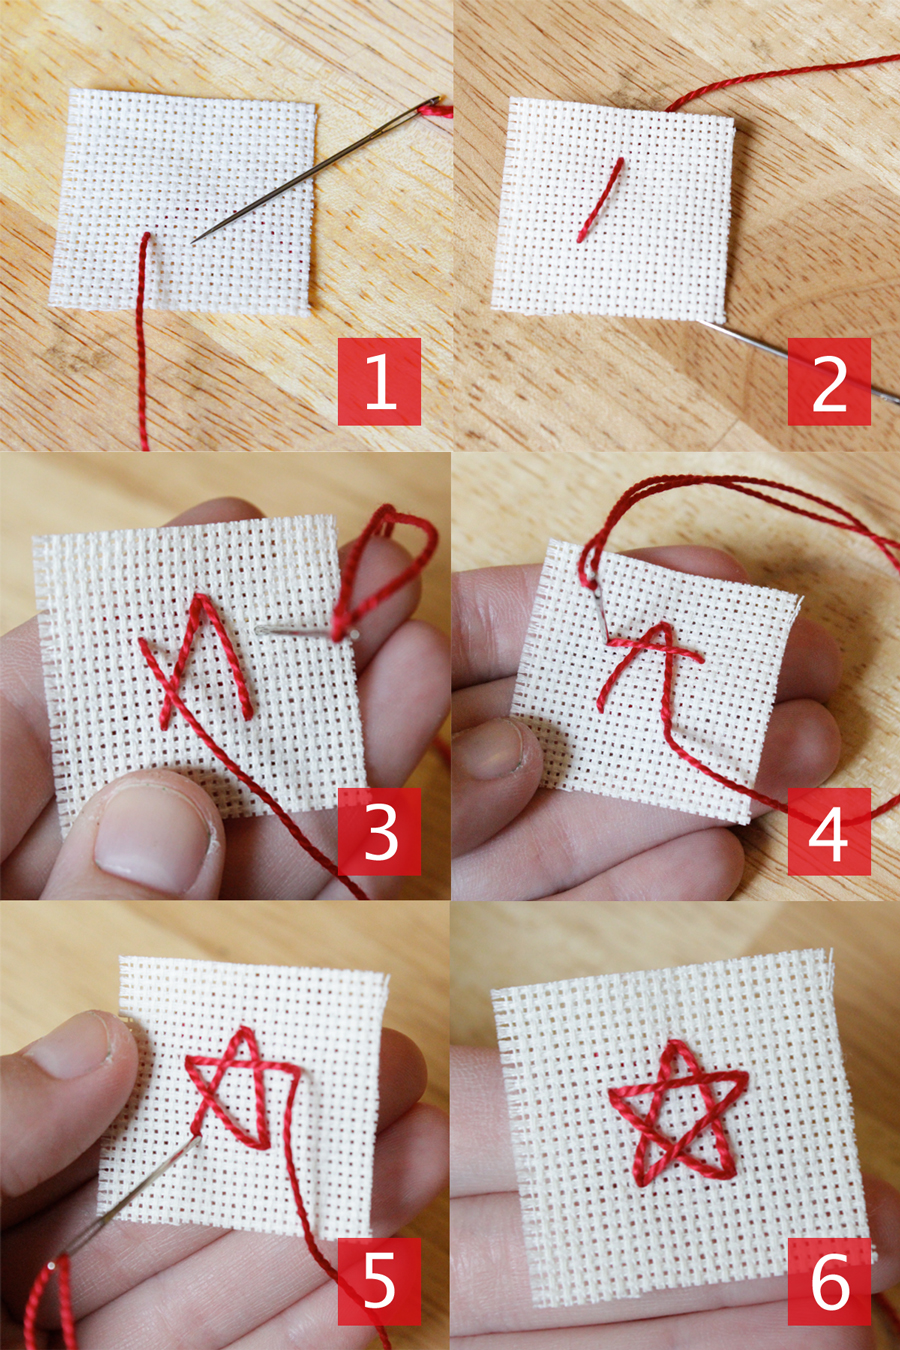 How To Embroider A Star : embroider, Embroidery, Stitches